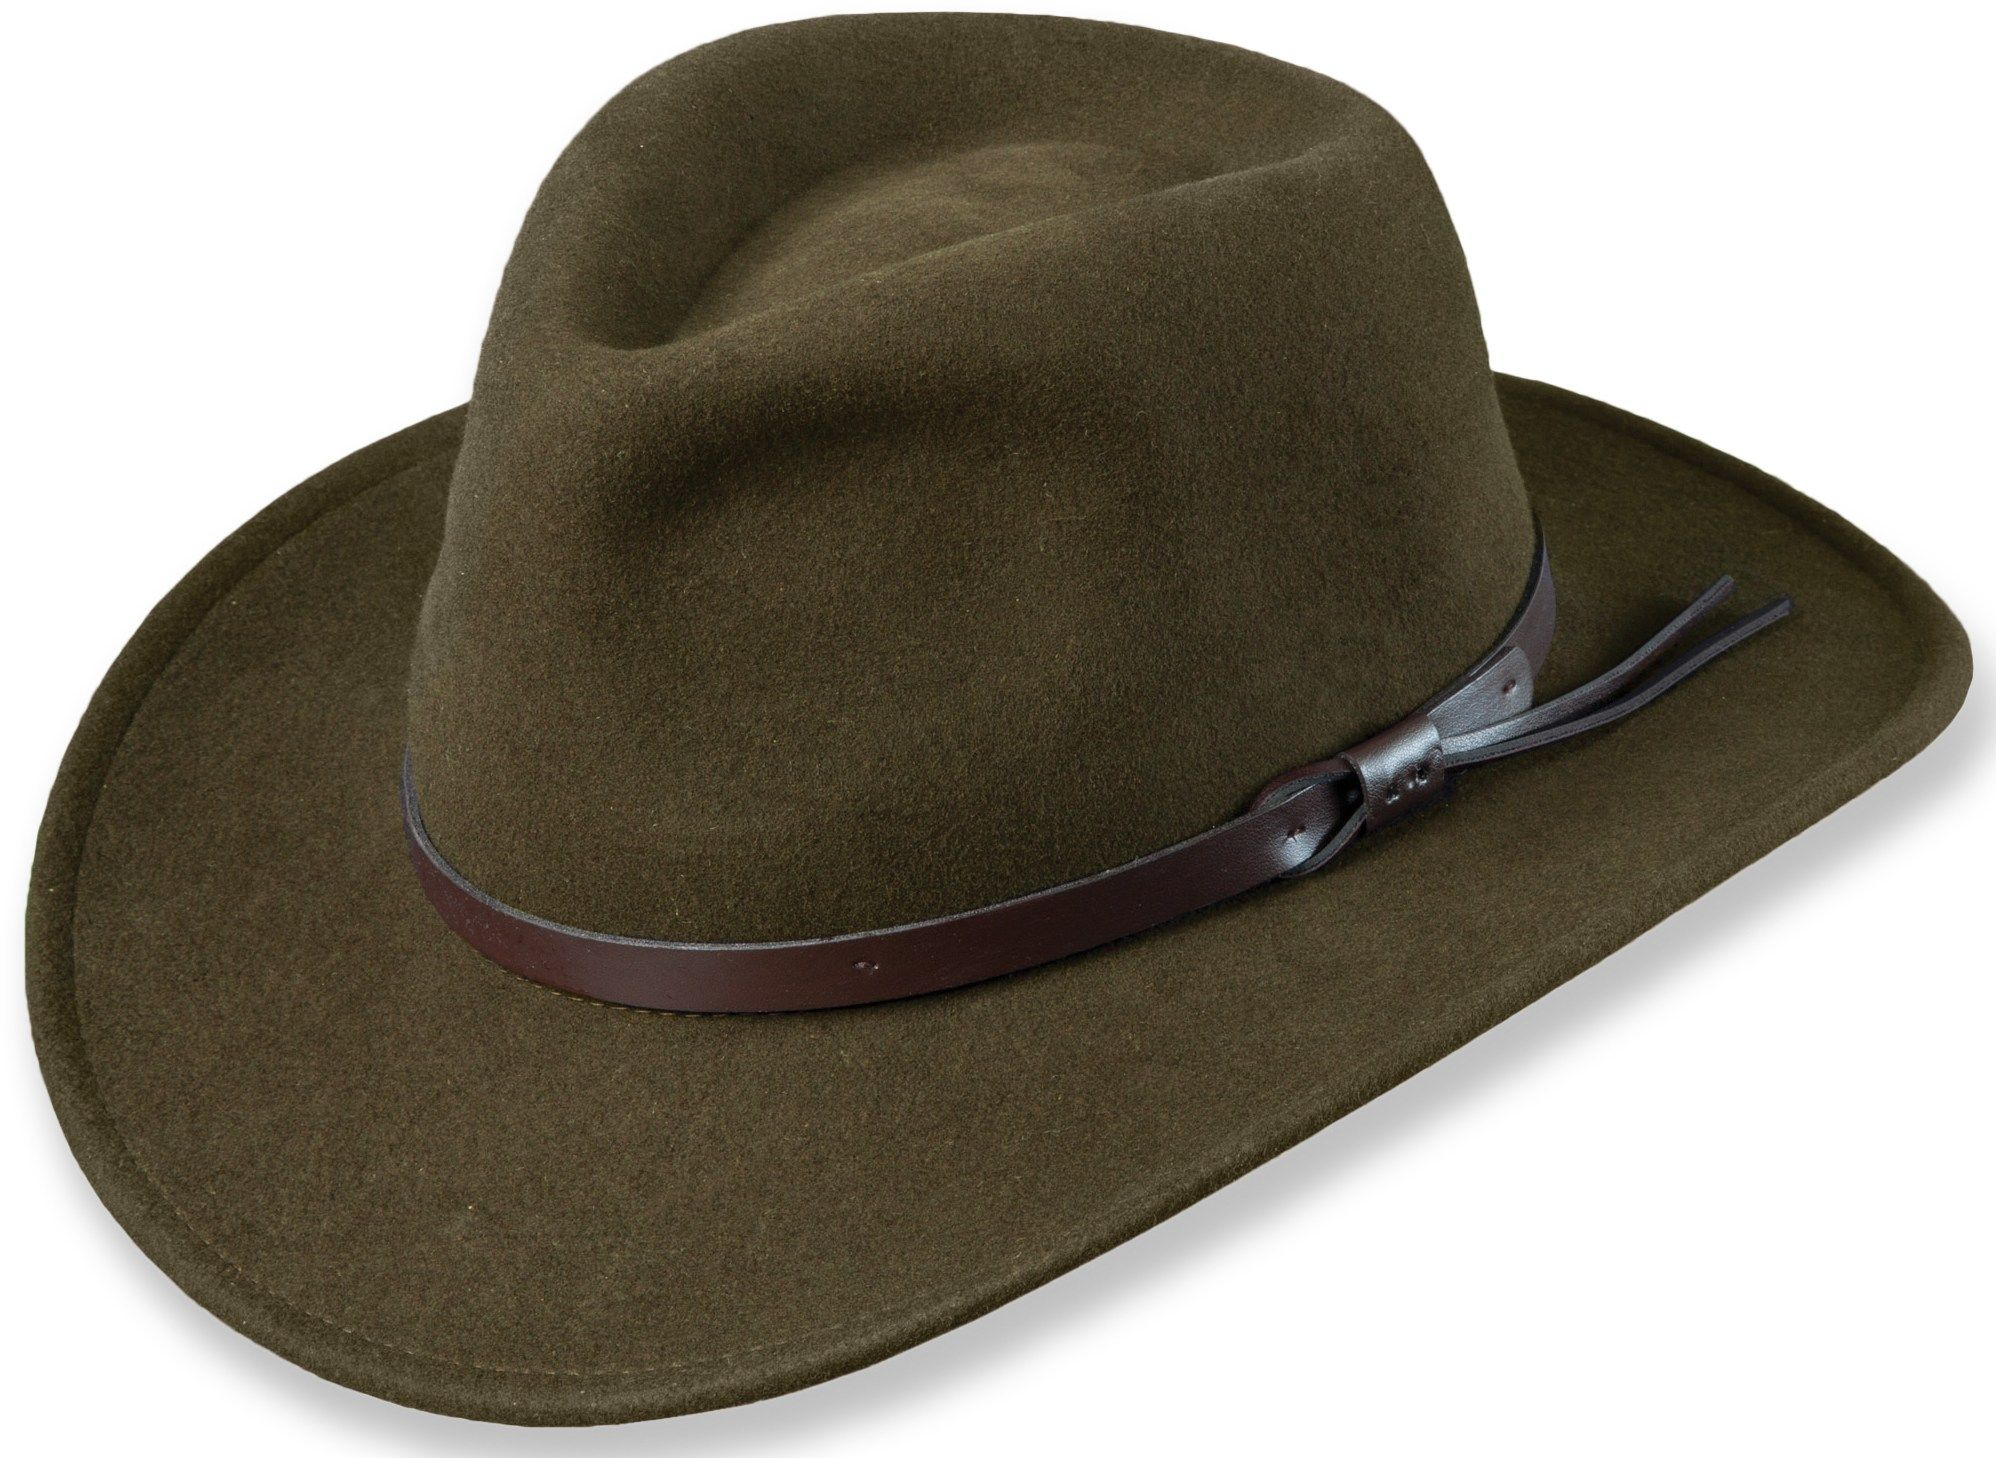 d2591783cff A fedora with a bit of western style. Crush it to fit in your pack